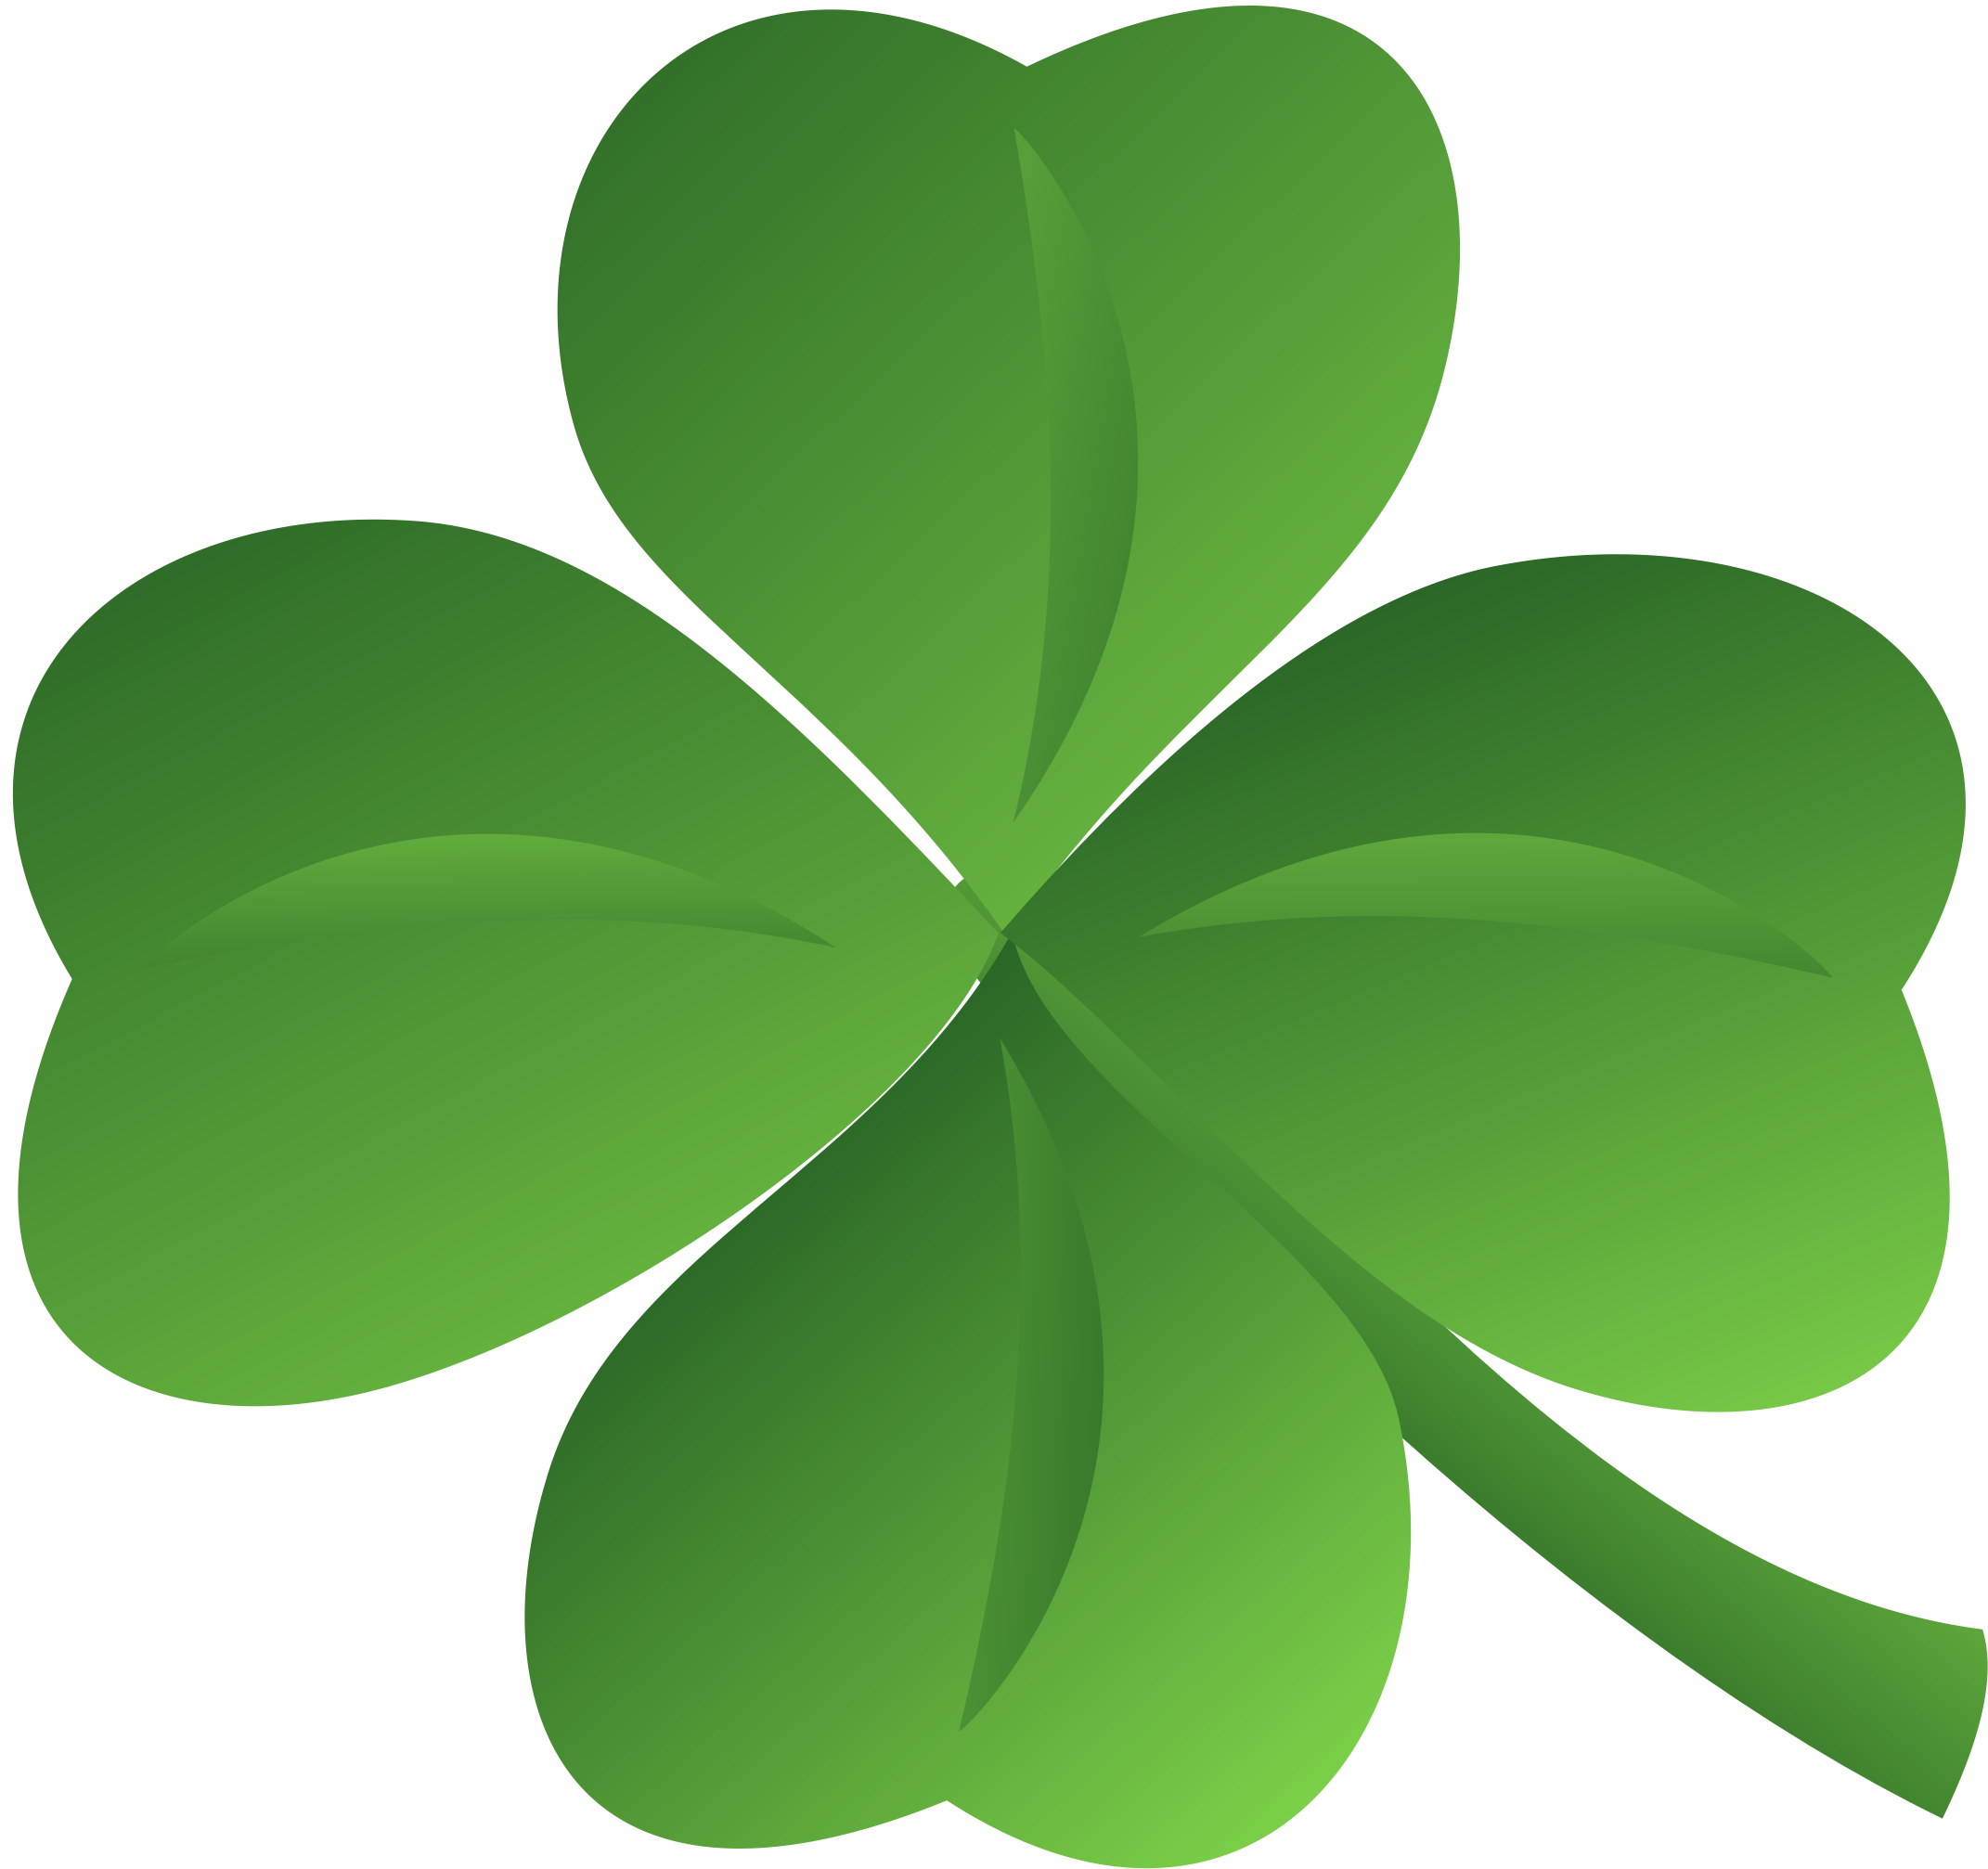 Clipart ns big image. Irish clover png png free library